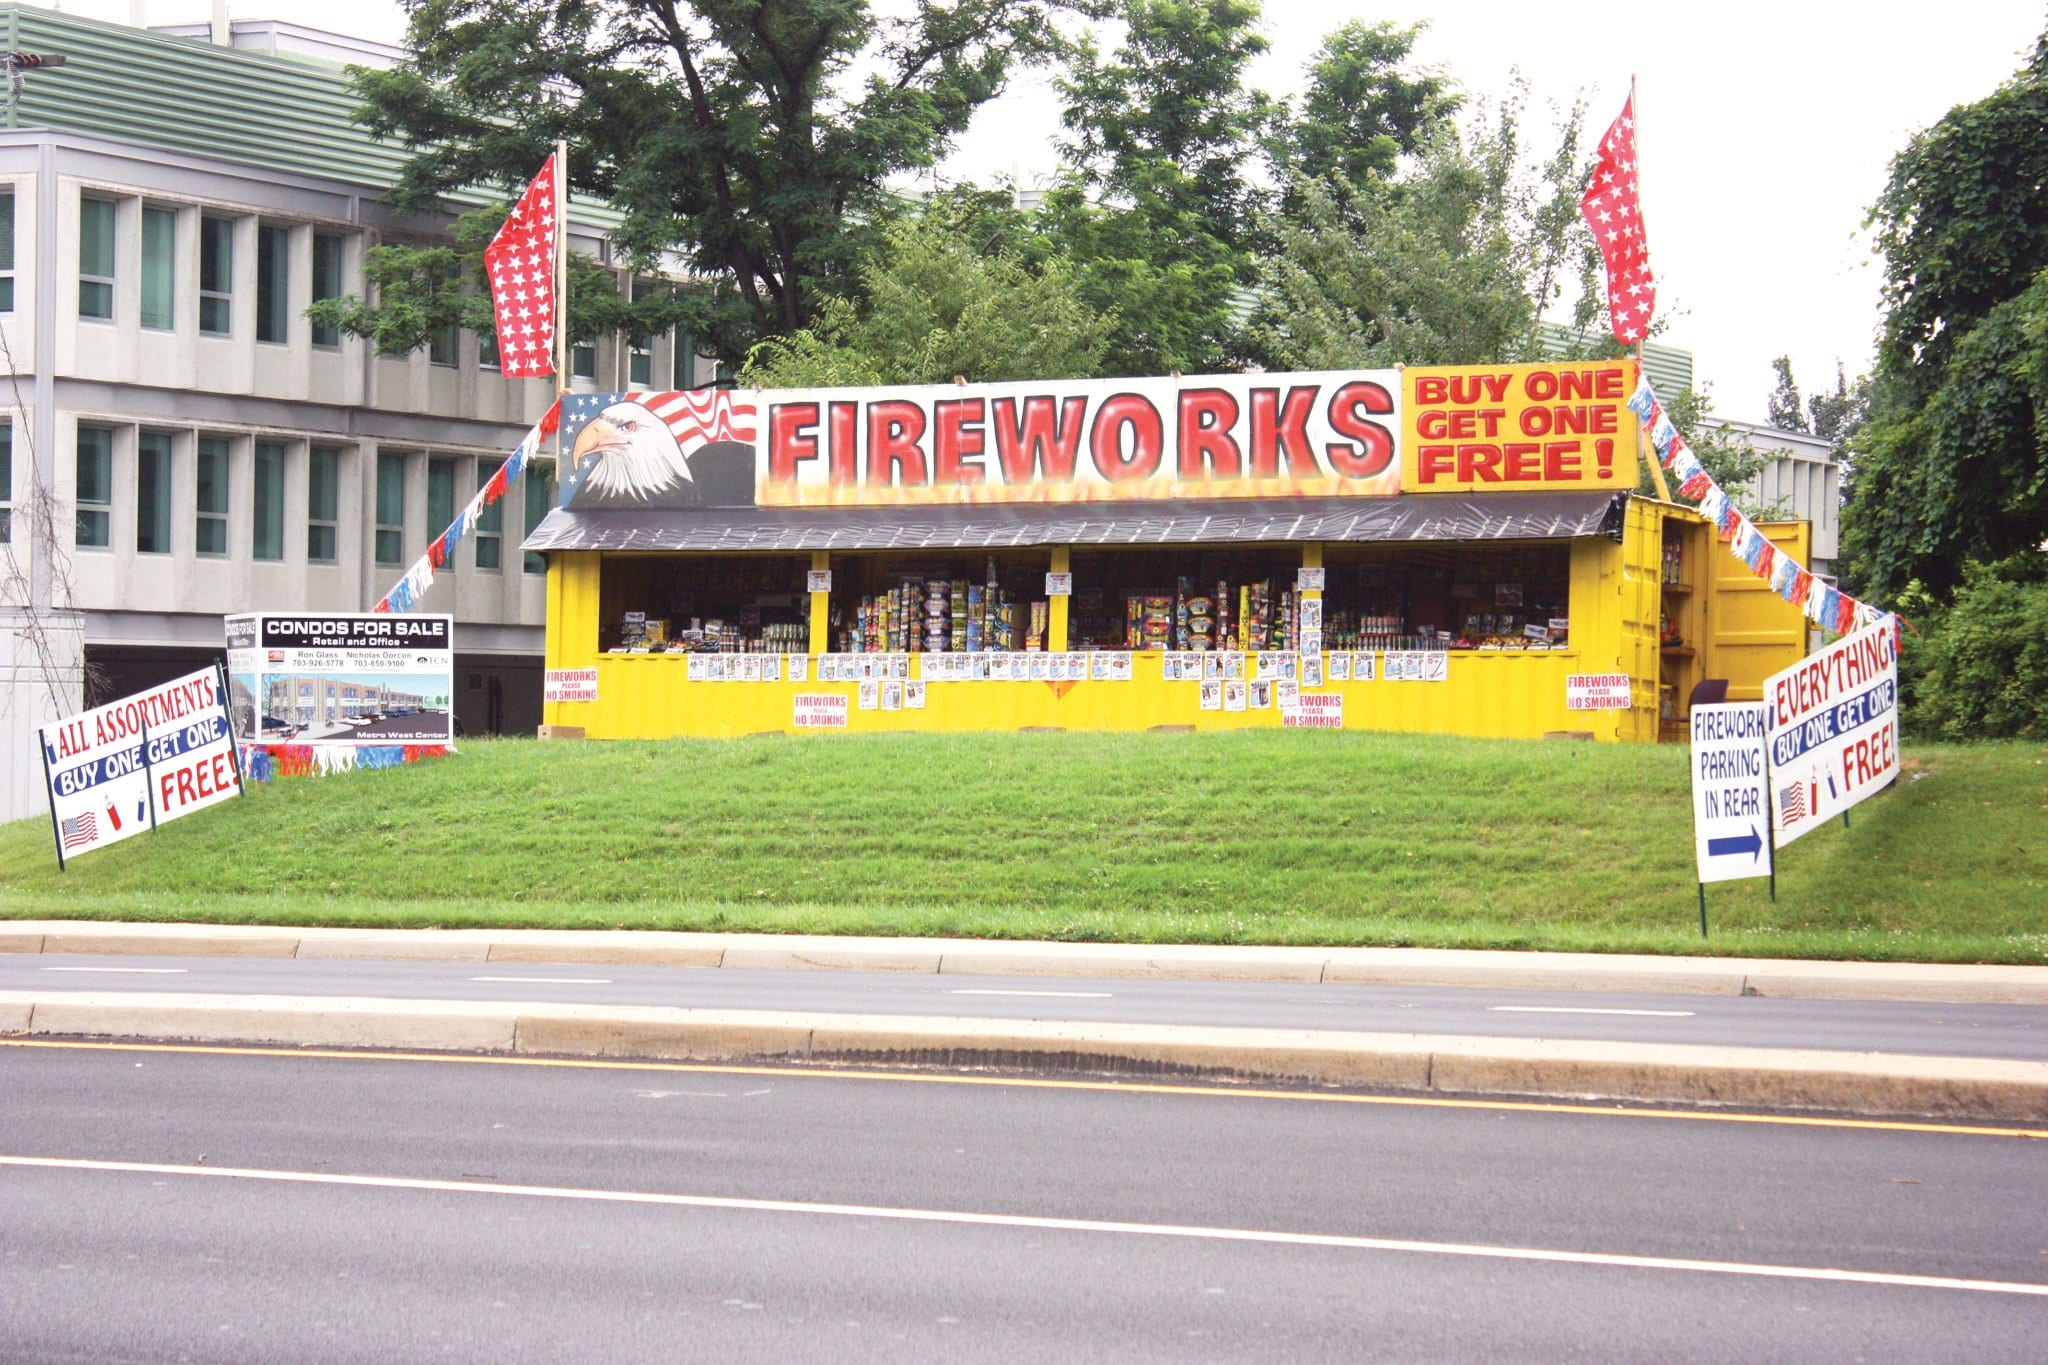 """THIS FAMILIAR FIREWORKS STAND has been set up on Route 7 just outside the city limits of Falls Church for many years. But this year, with F.C. now having its own fire marshal, after years of contracting that service from Arlington County, a stiff notice was sent out from City Hall last week warning that """"possession, manufacture, storage, sale and unauthorized use of fireworks are illegal in the City of Falls Church. This includes all consumer fireworks."""" Illegal are firecrackers, torpedoes, skyrockets, Roman candles, sparklers or other devices of like construction and any other devices containing any explosive or flammable compound. Violators are subject to prosecution of a Class 1 misdemeanor, as well as having fireworks seized. (Photo: News-Press)"""